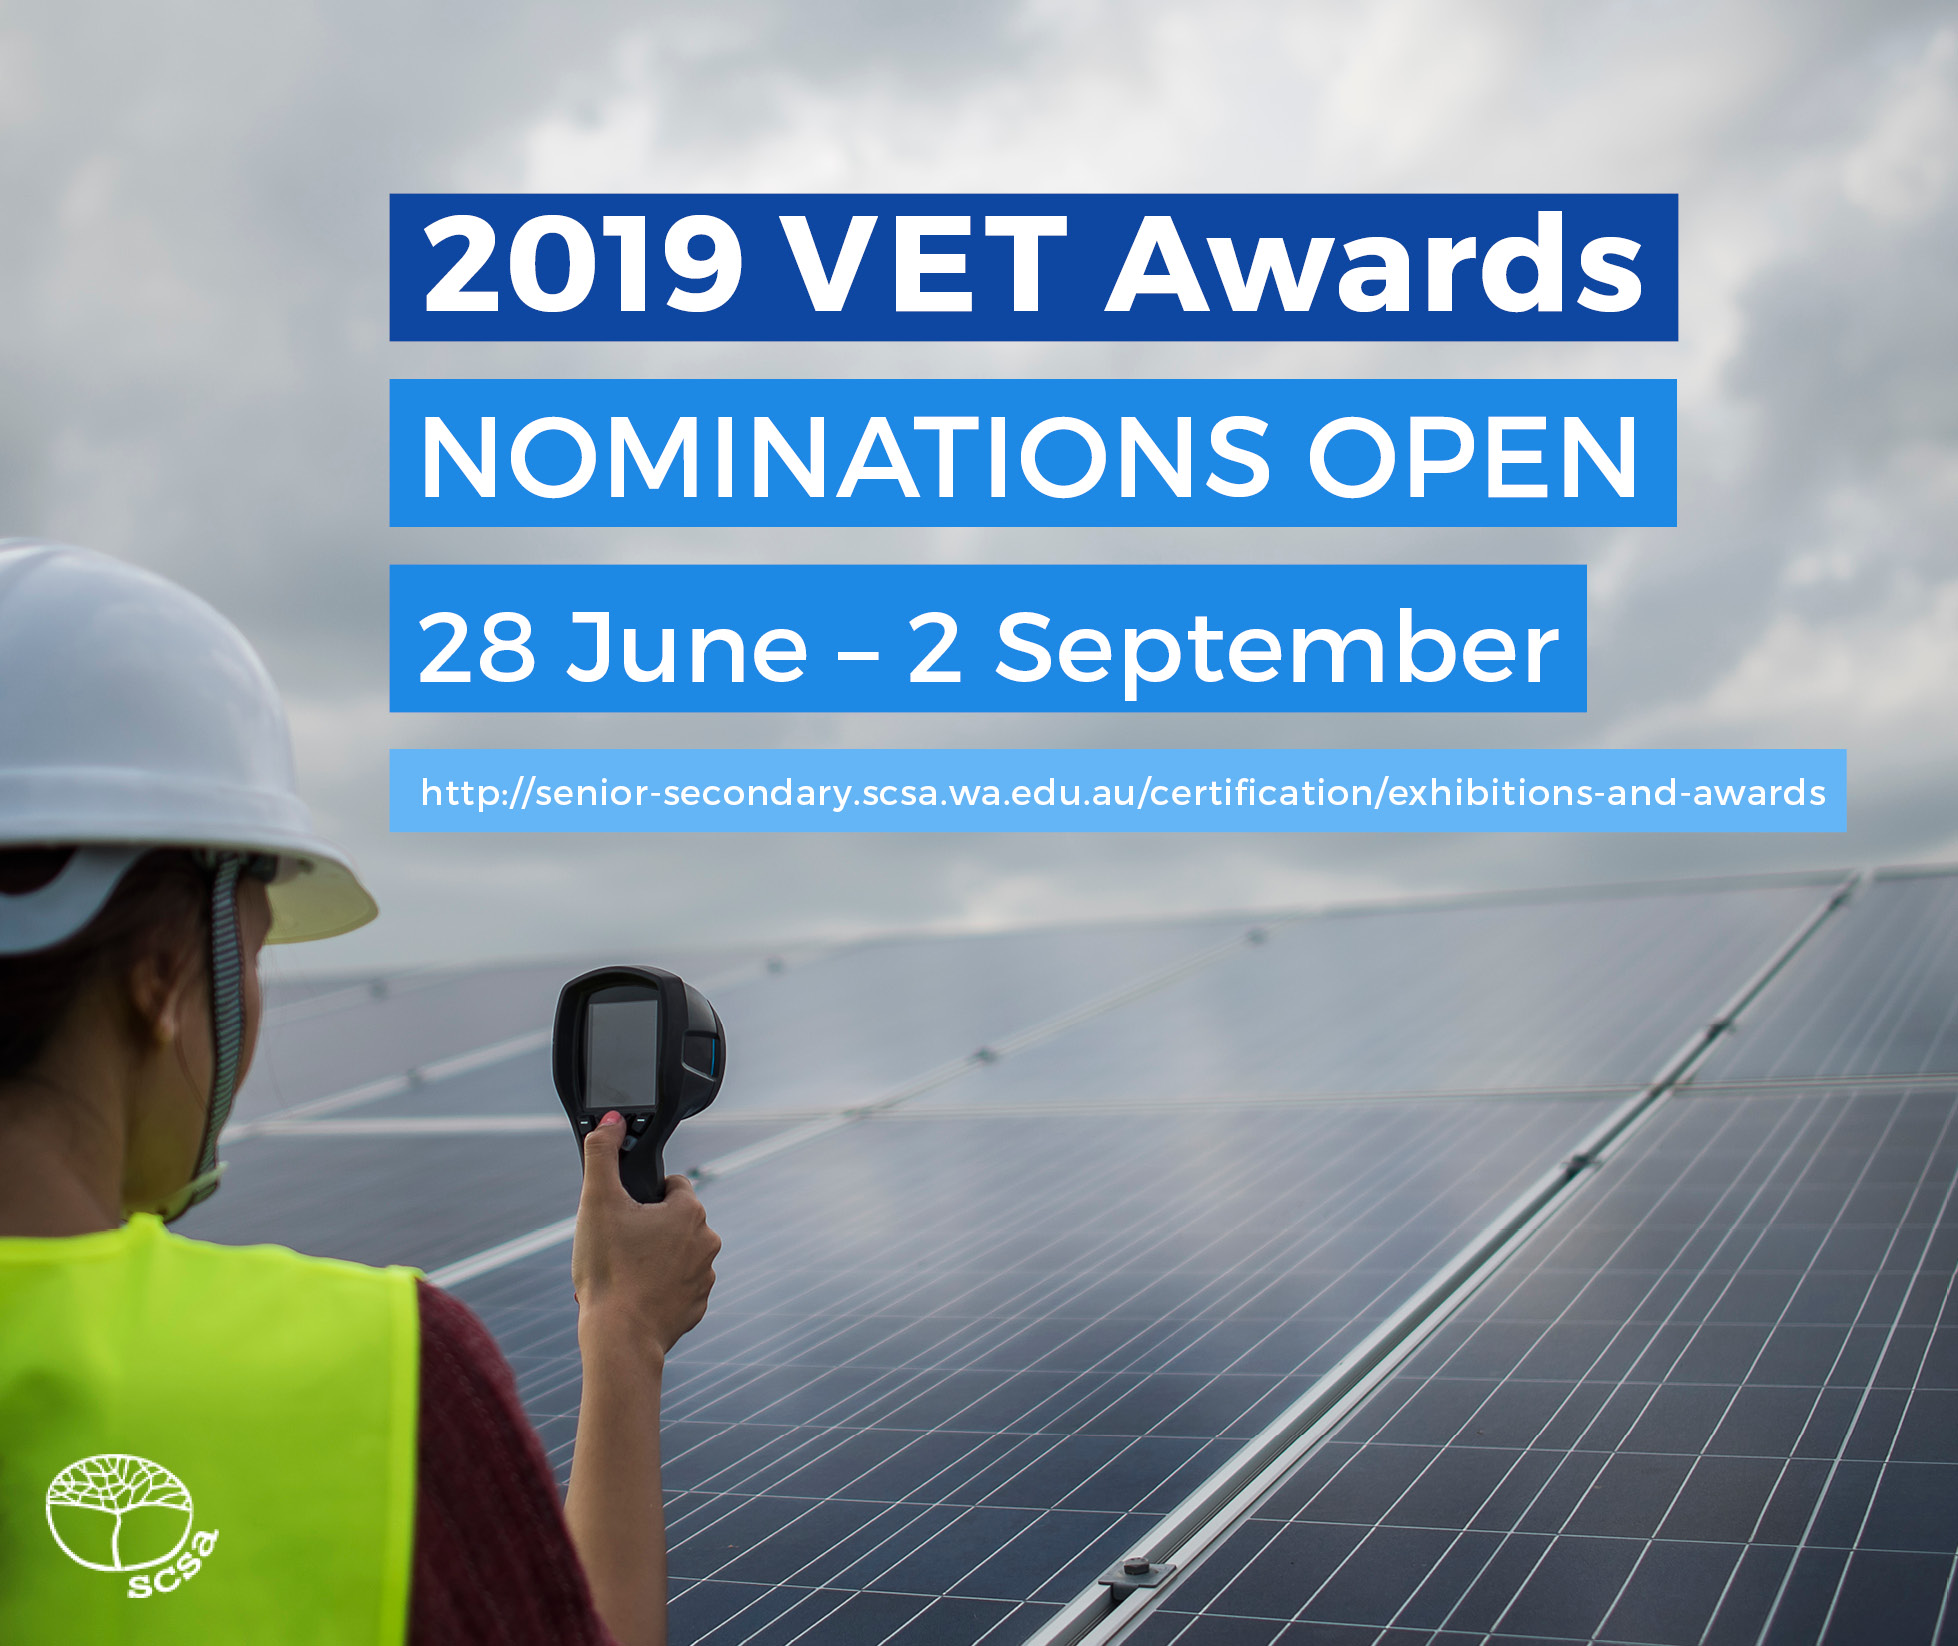 2019 vet awards nominations open 28 june to 2 september